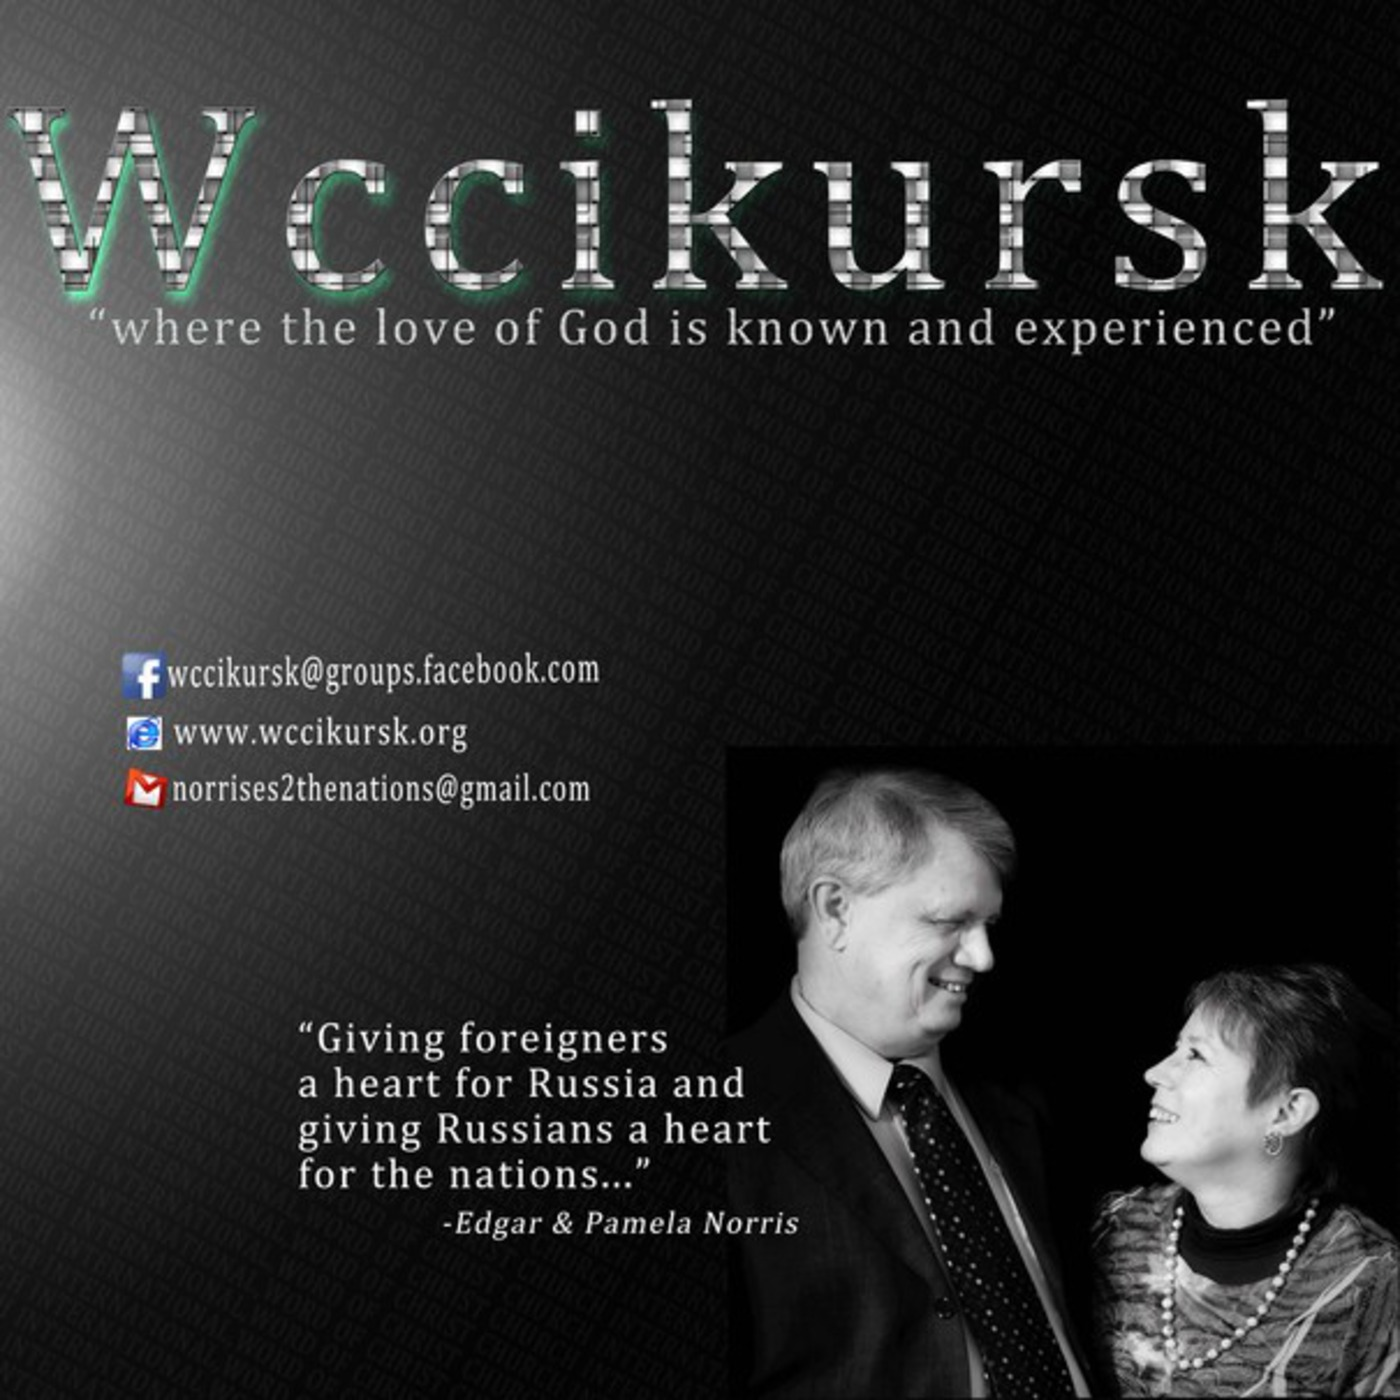 WcciKursk's Podcast